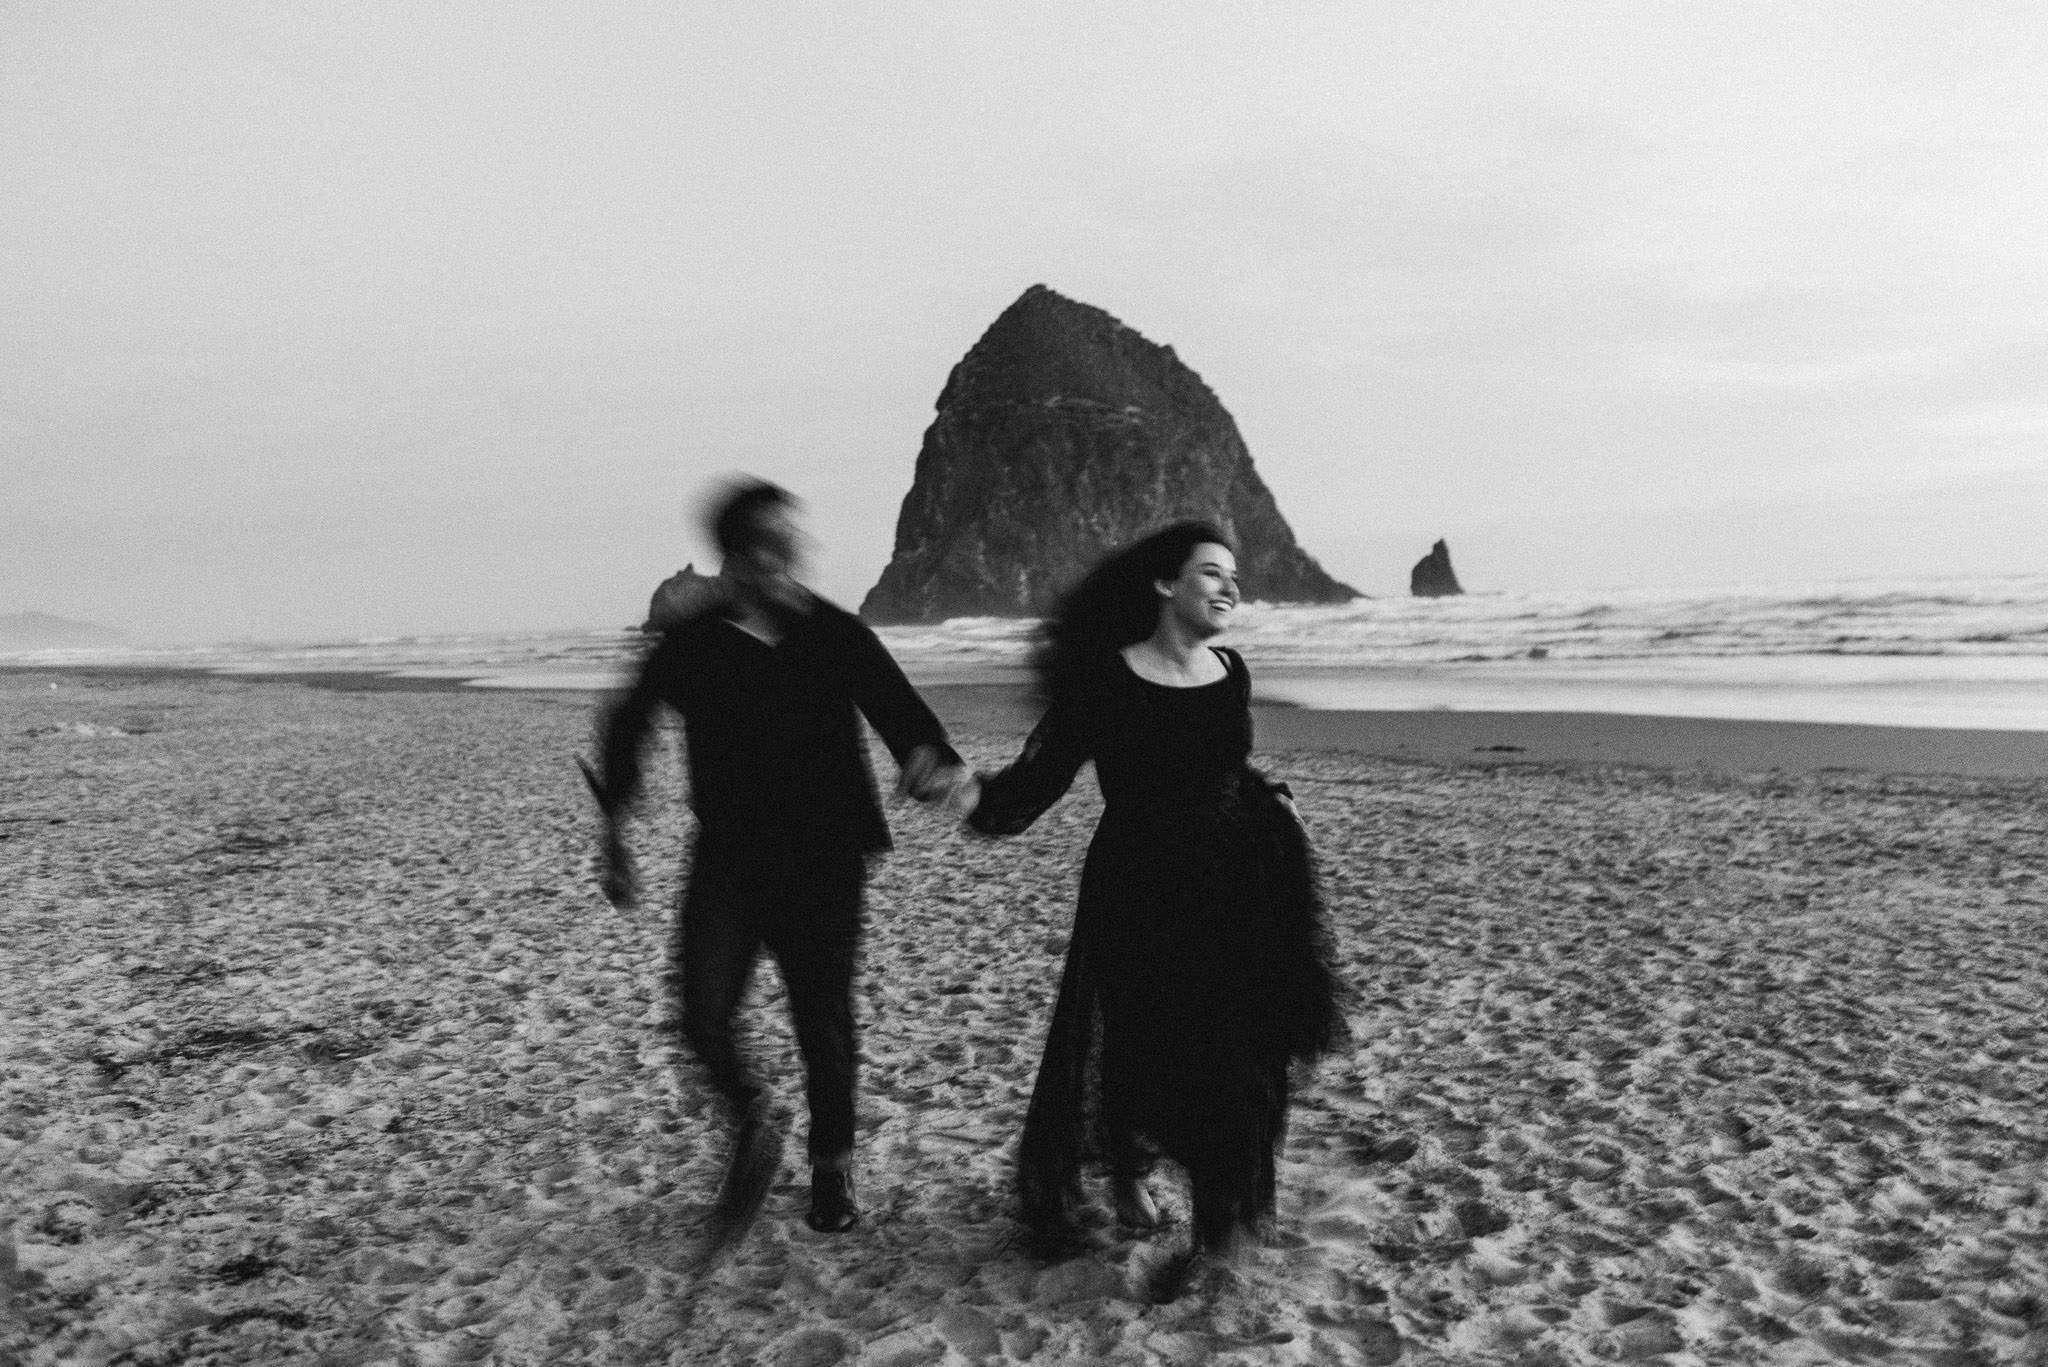 oregon-cannon-beach-ecola-park-adventure-destination-houston-engagement-photographer-sm-9.jpg